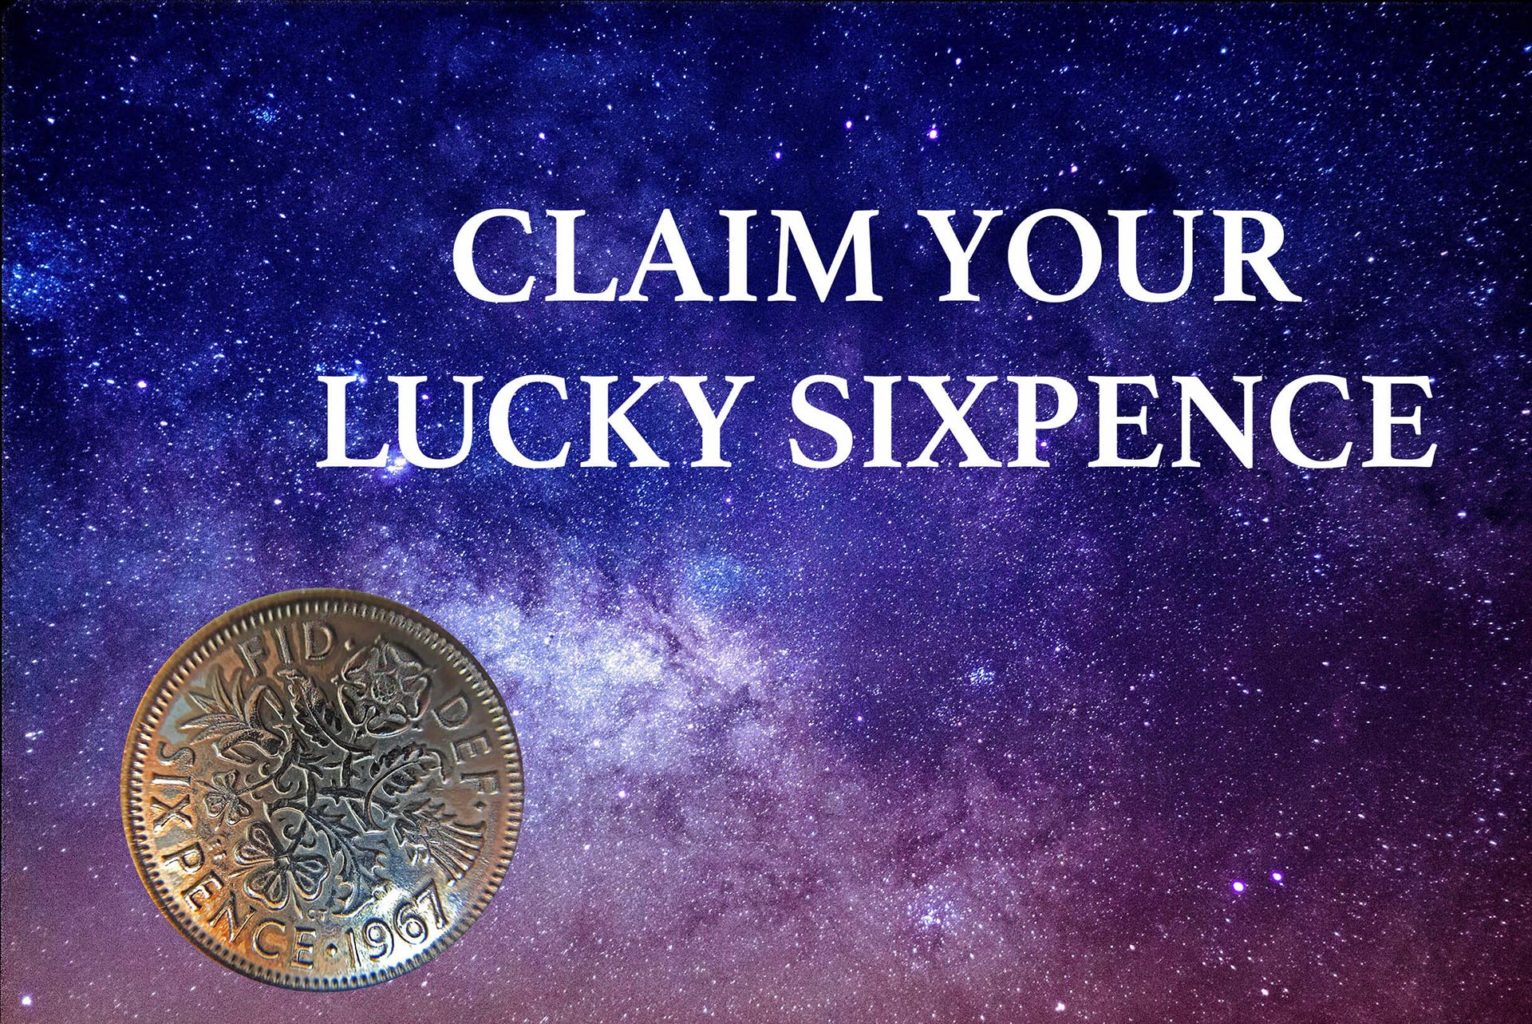 Make Your Wishes Come True With A Lucky Sixpence!